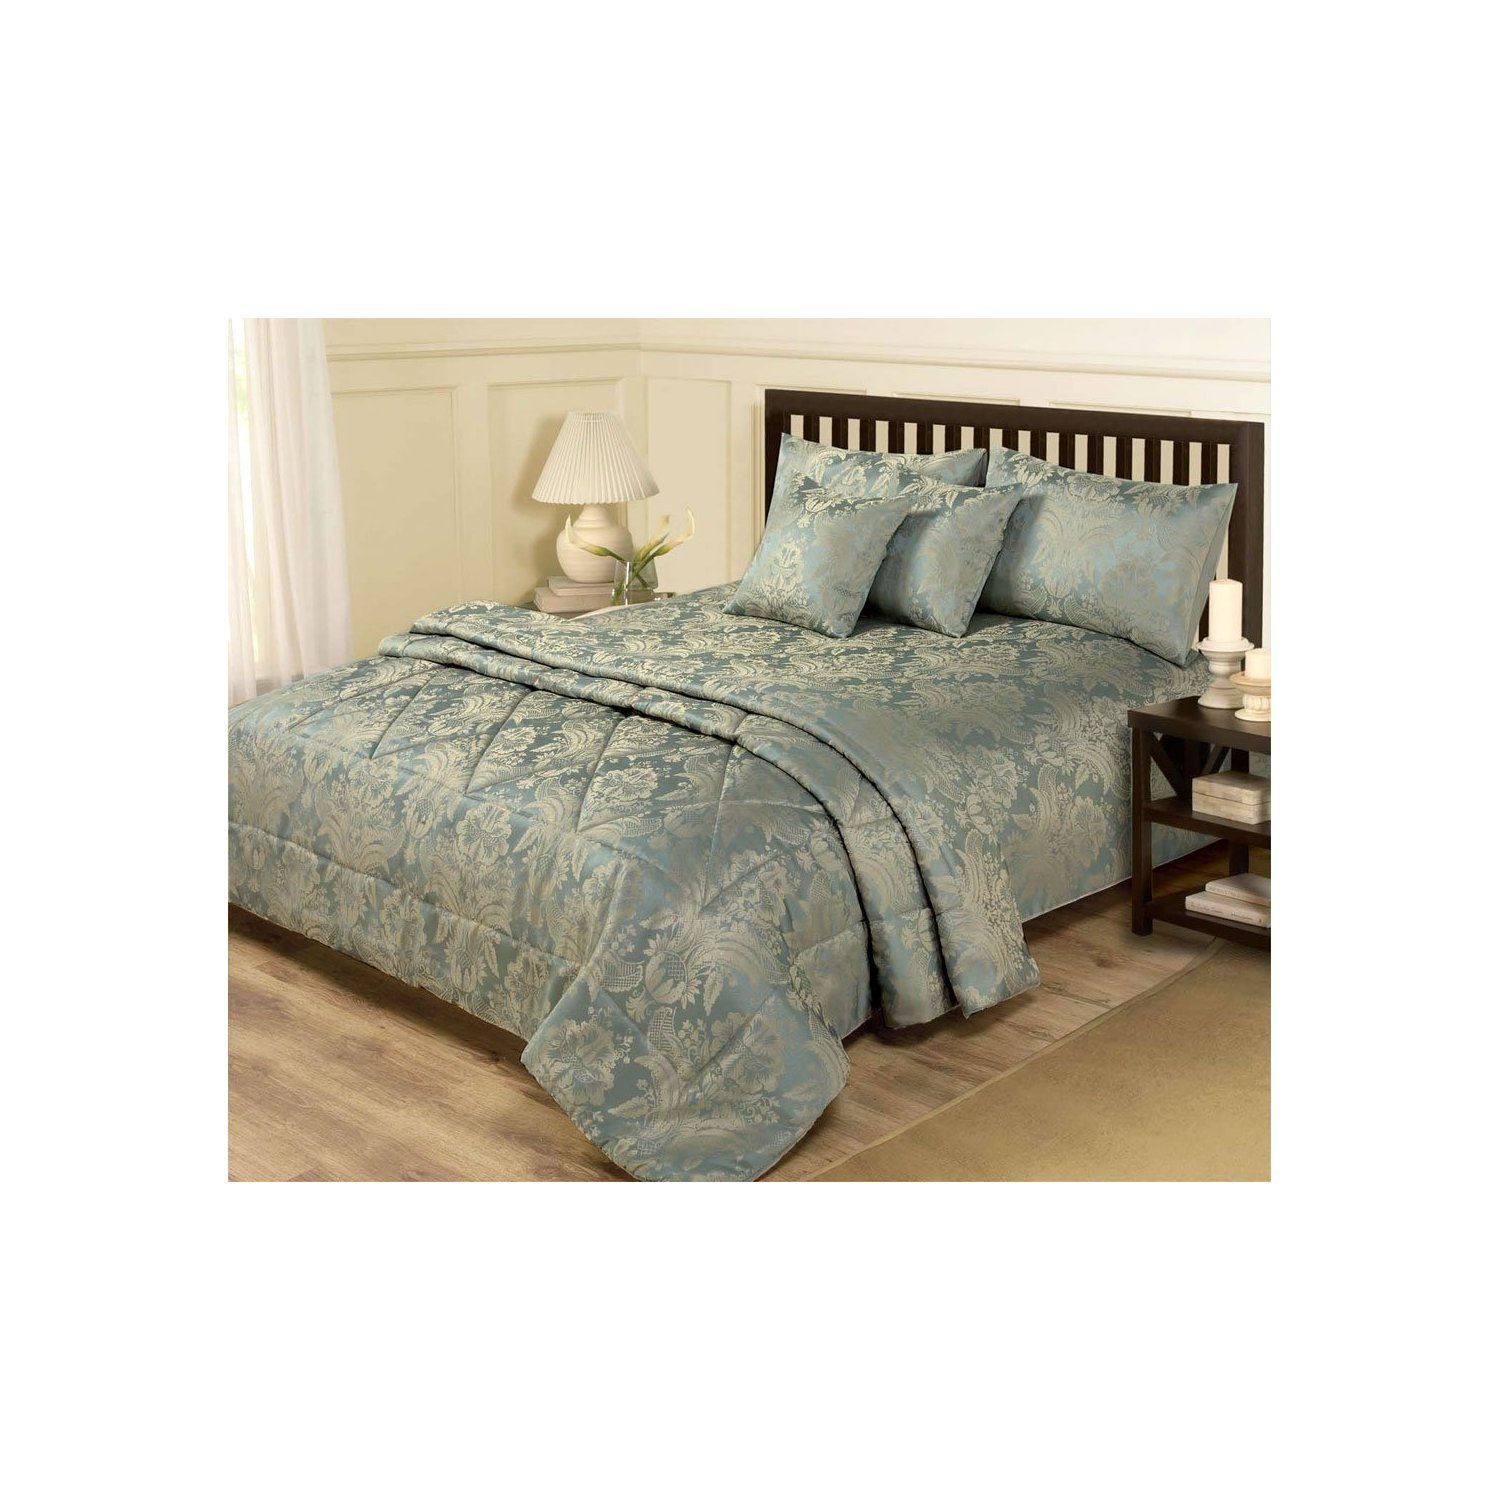 6 PIECE JACQUARD BLUE & GOLD BEDDING DOUBLE DUVET SET & BEDSPREAD